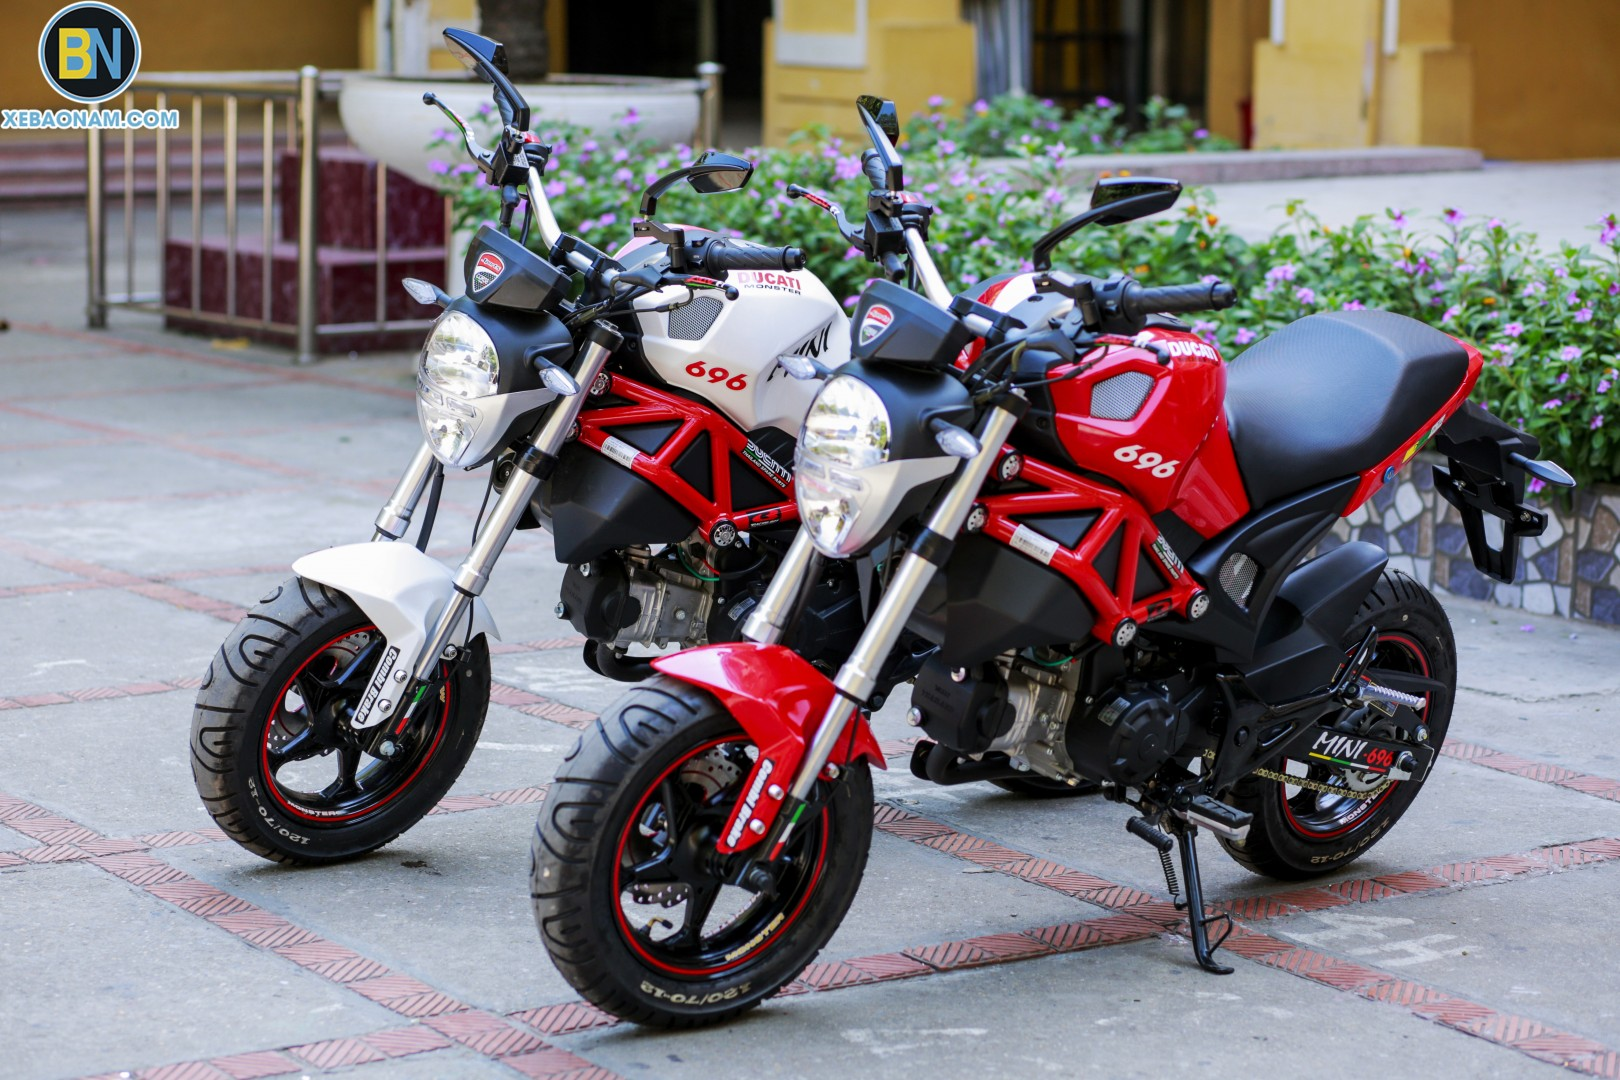 xe-may-ducati-mini-monster-110-xebaonam(3)